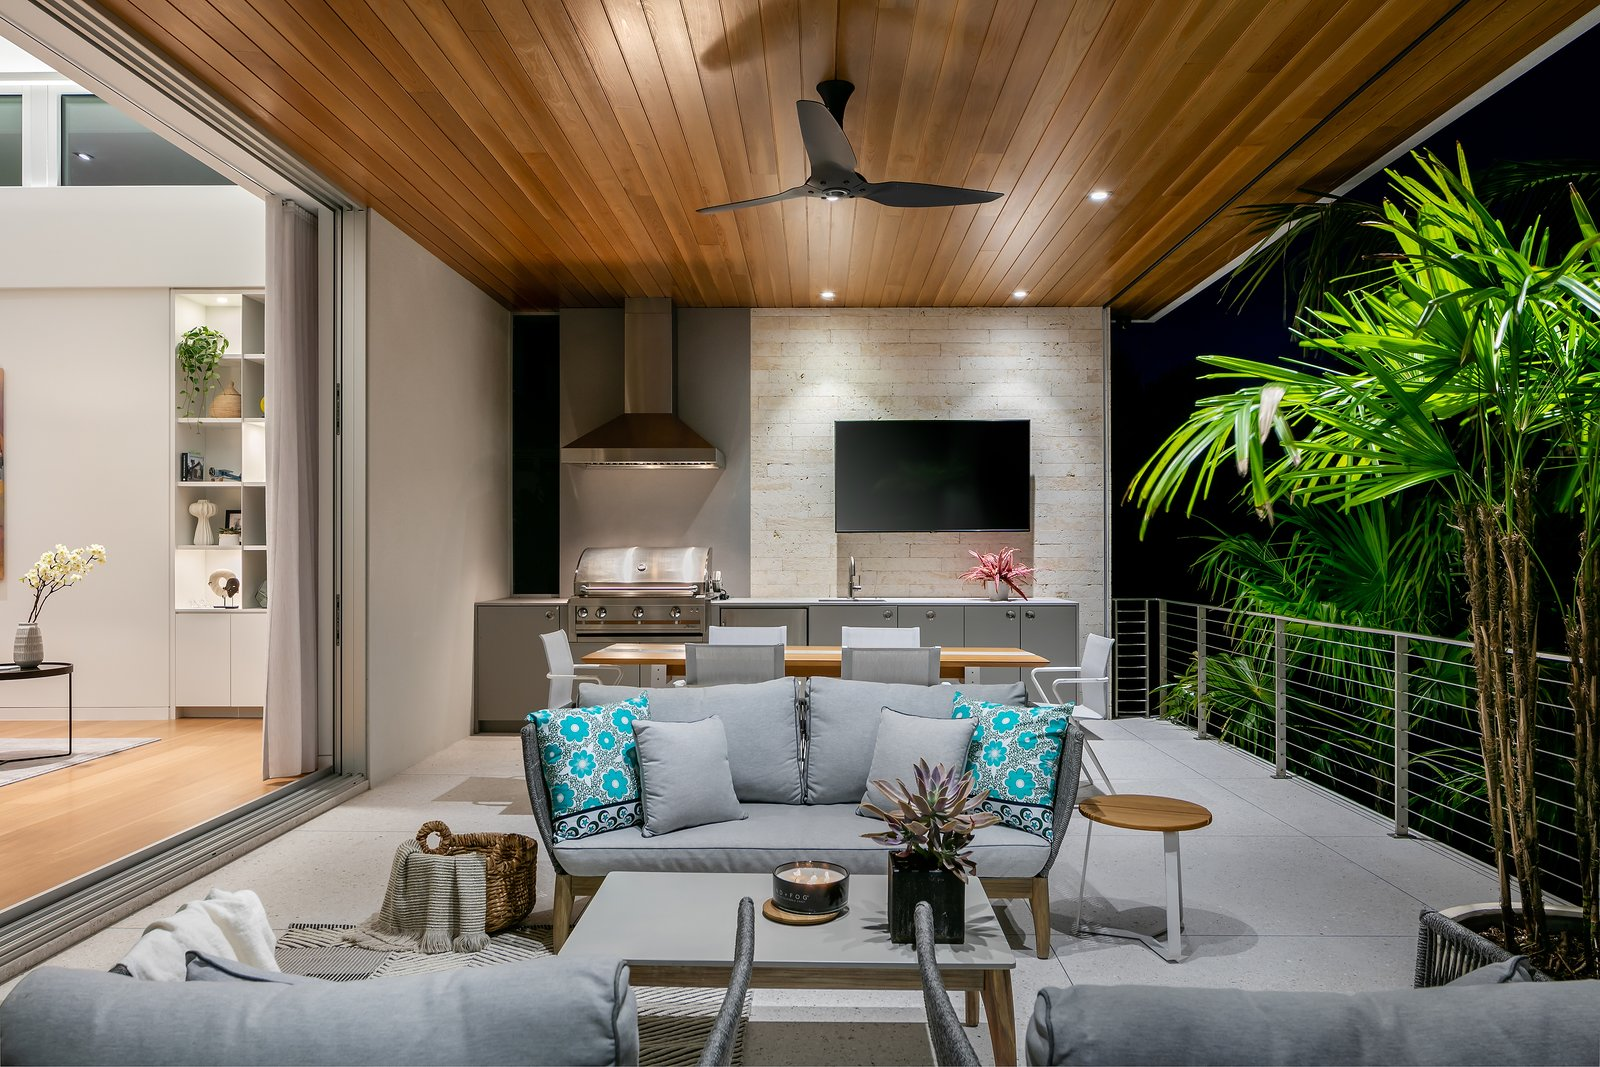 Outdoor, Back Yard, Shrubs, Horizontal Fences, Wall, Trees, Large Patio, Porch, Deck, Stone Fences, Wall, Planters Patio, Porch, Deck, and Concrete Patio, Porch, Deck  Bayview House by Leader Design Studio